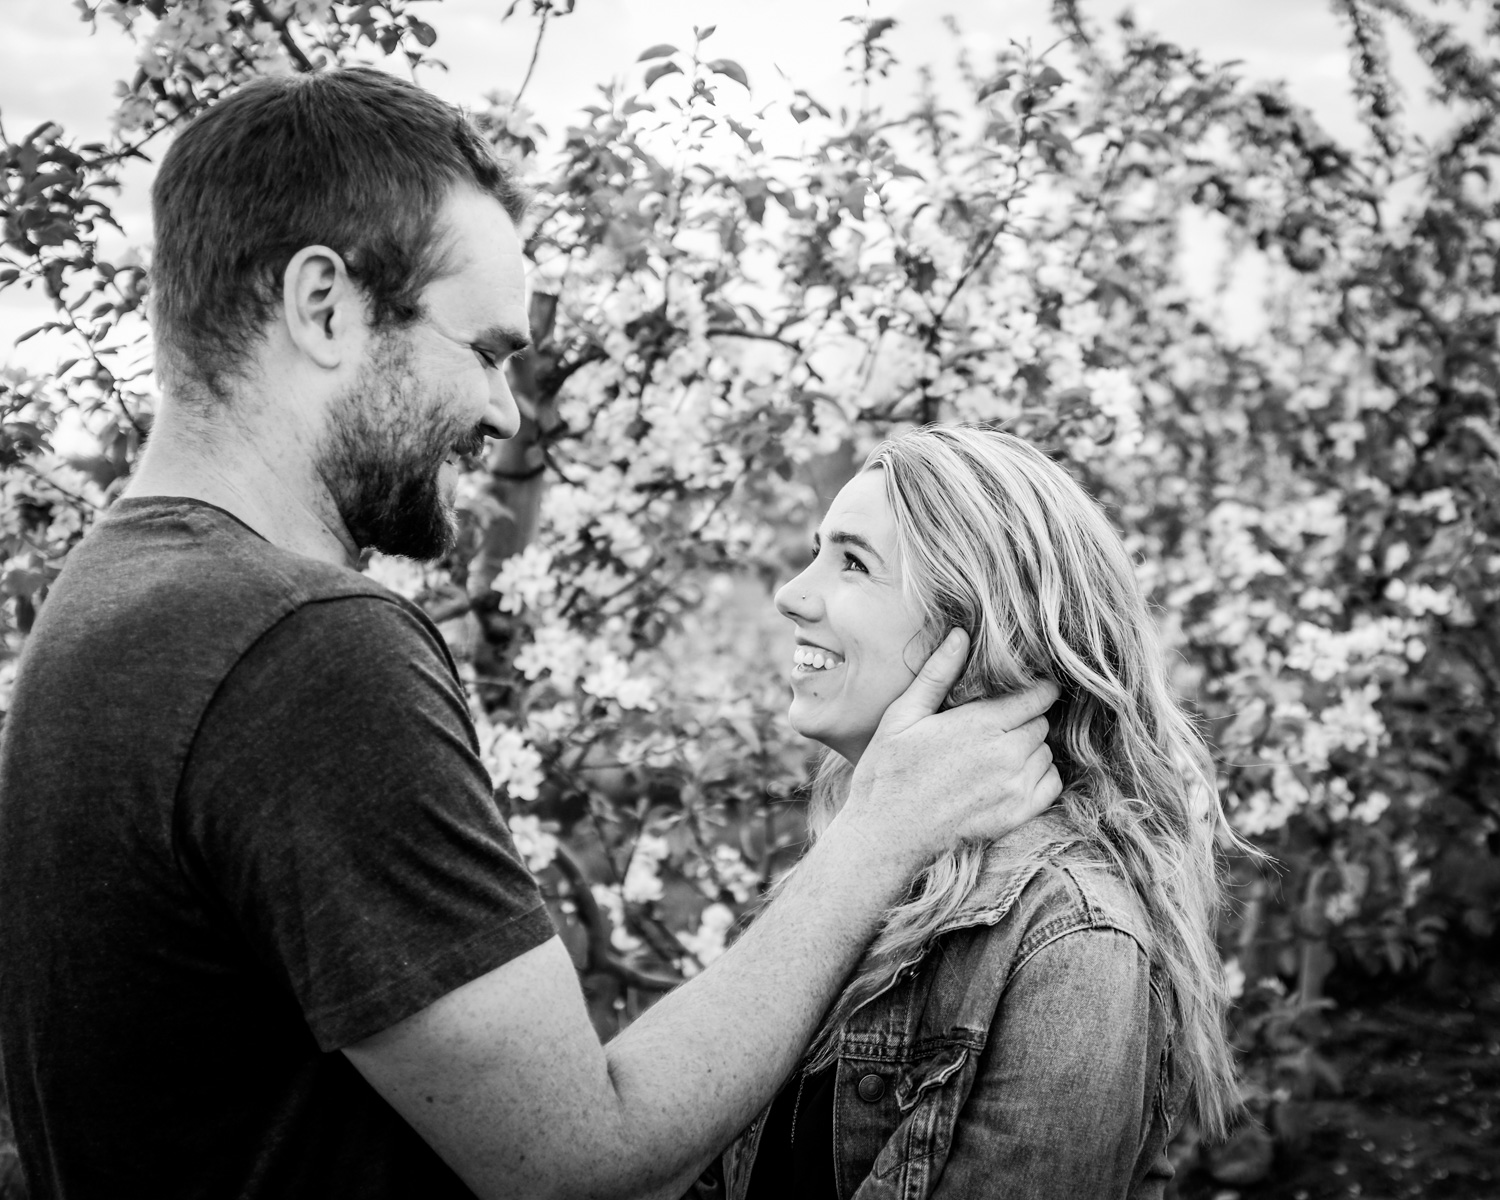 Candid couples photo - Fun Ways to Photograph Couples That are a Bit Awkward